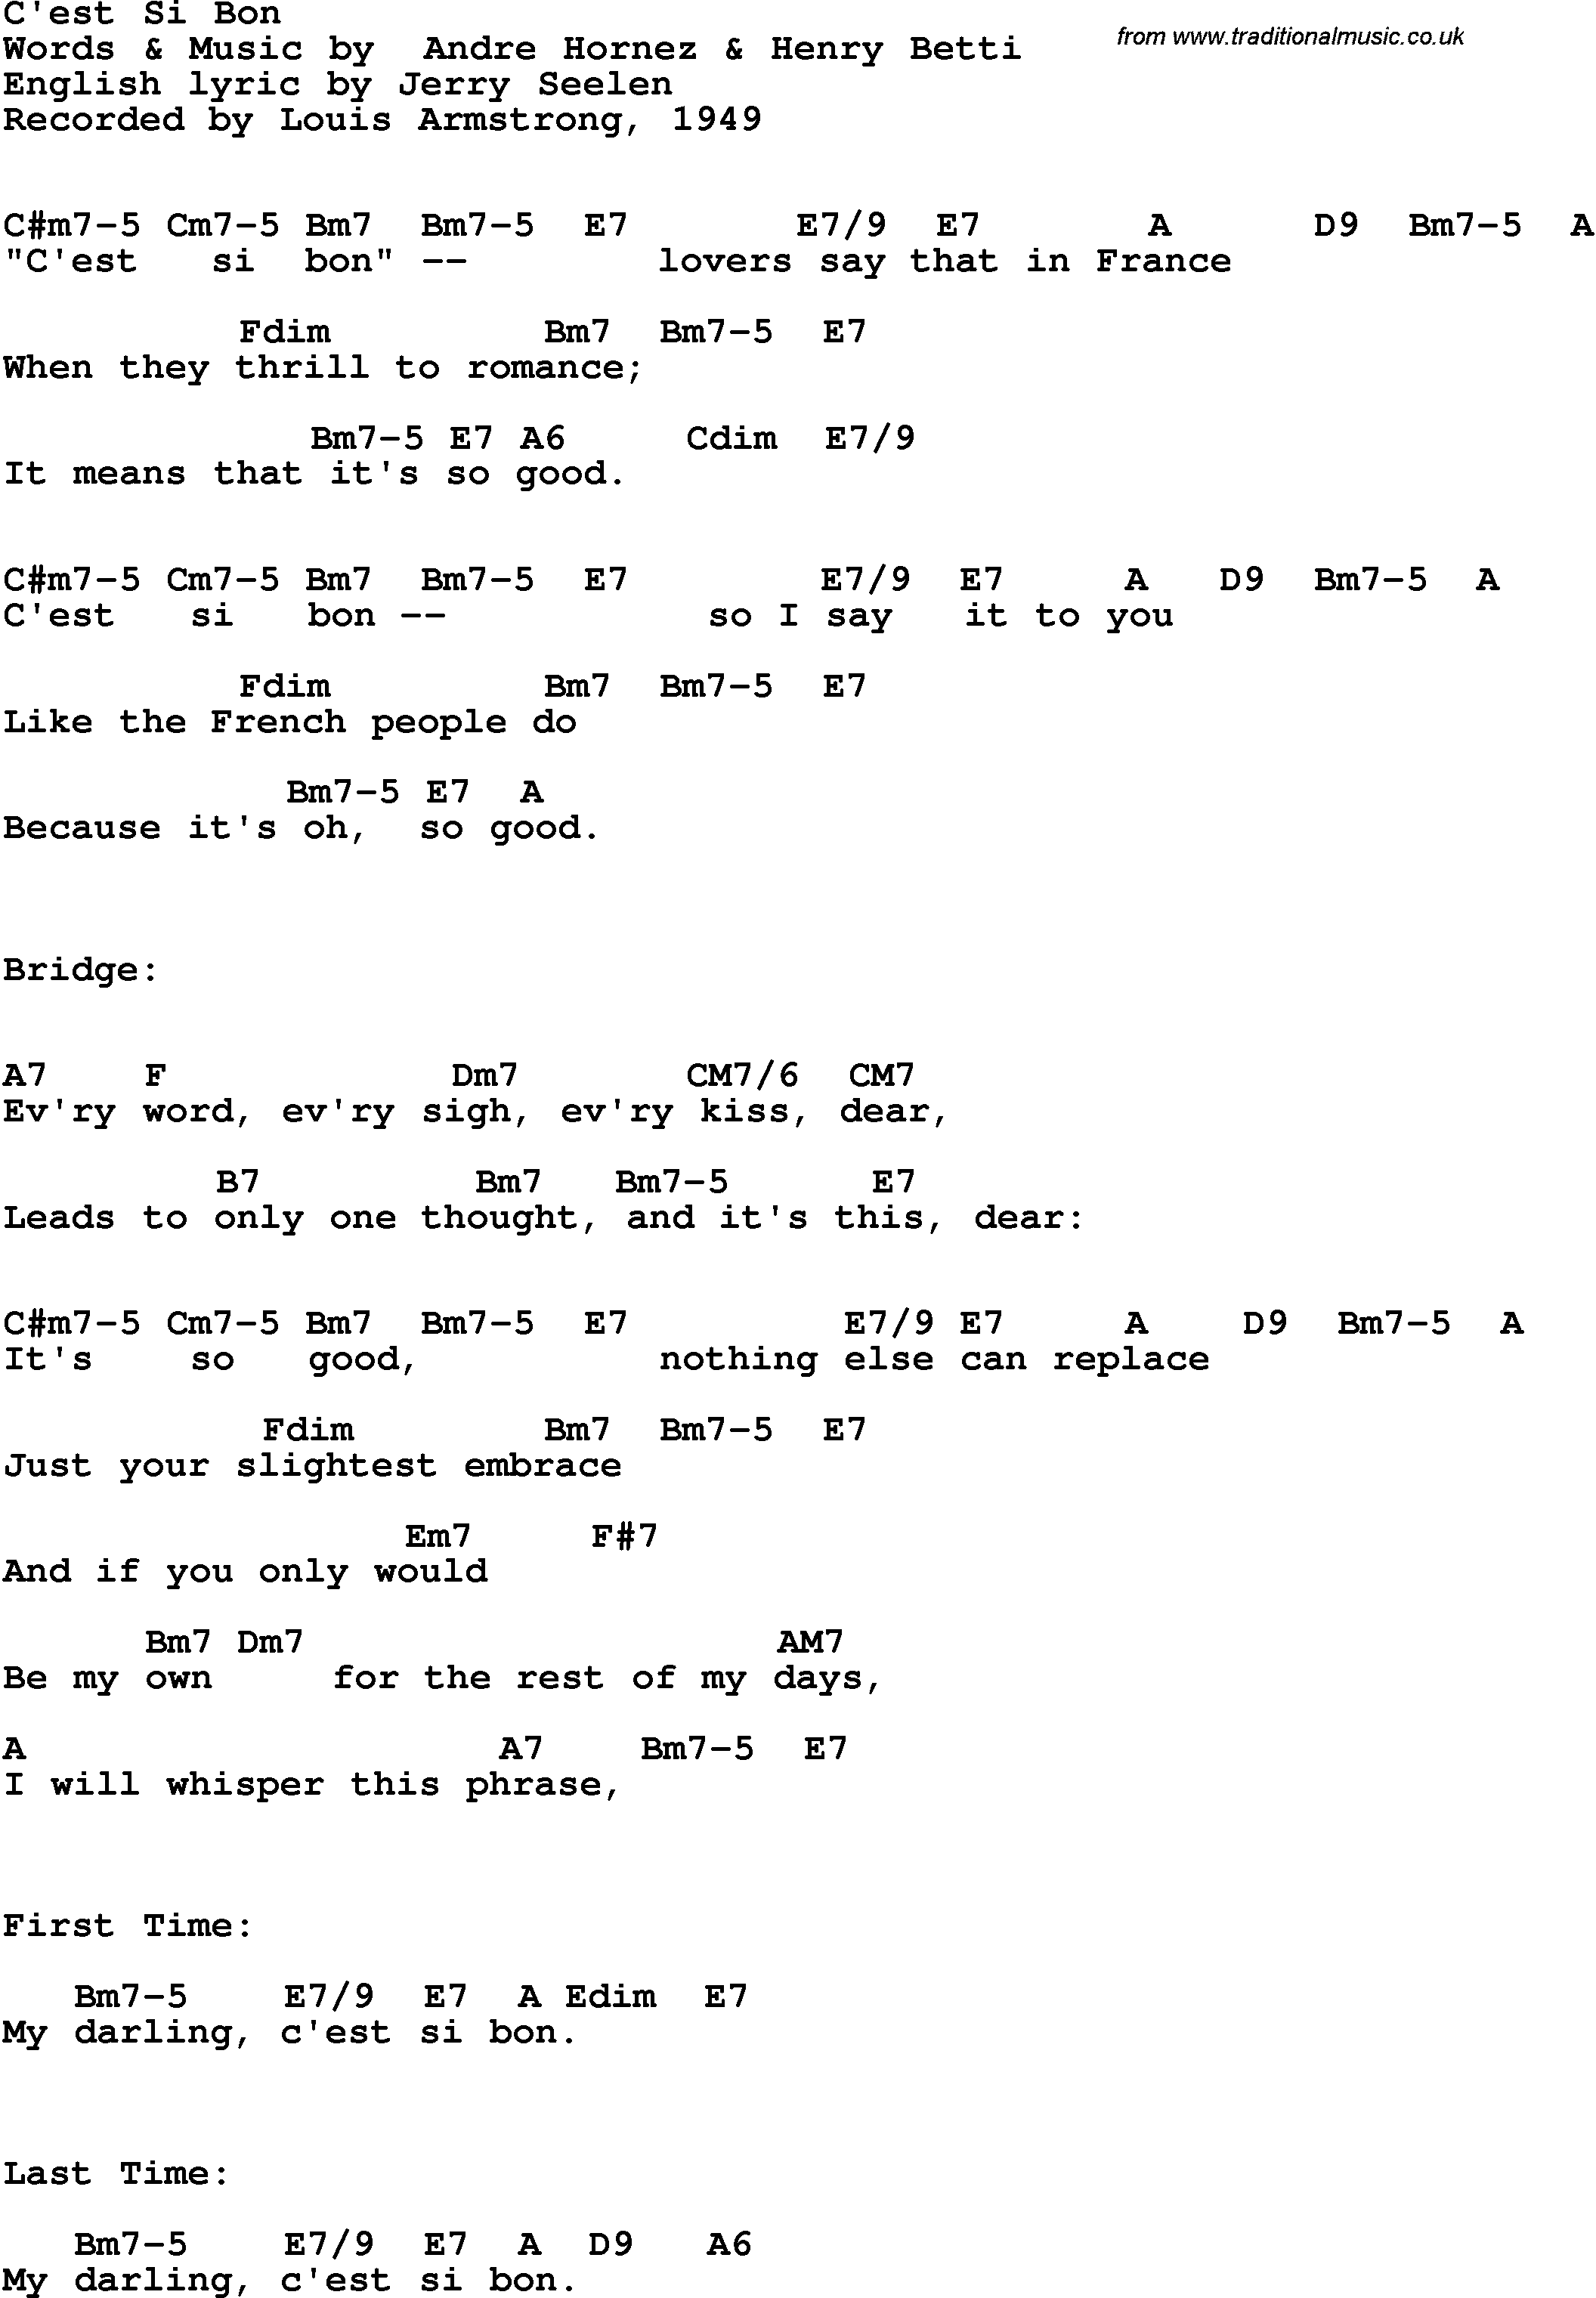 Music lyrics with guitar